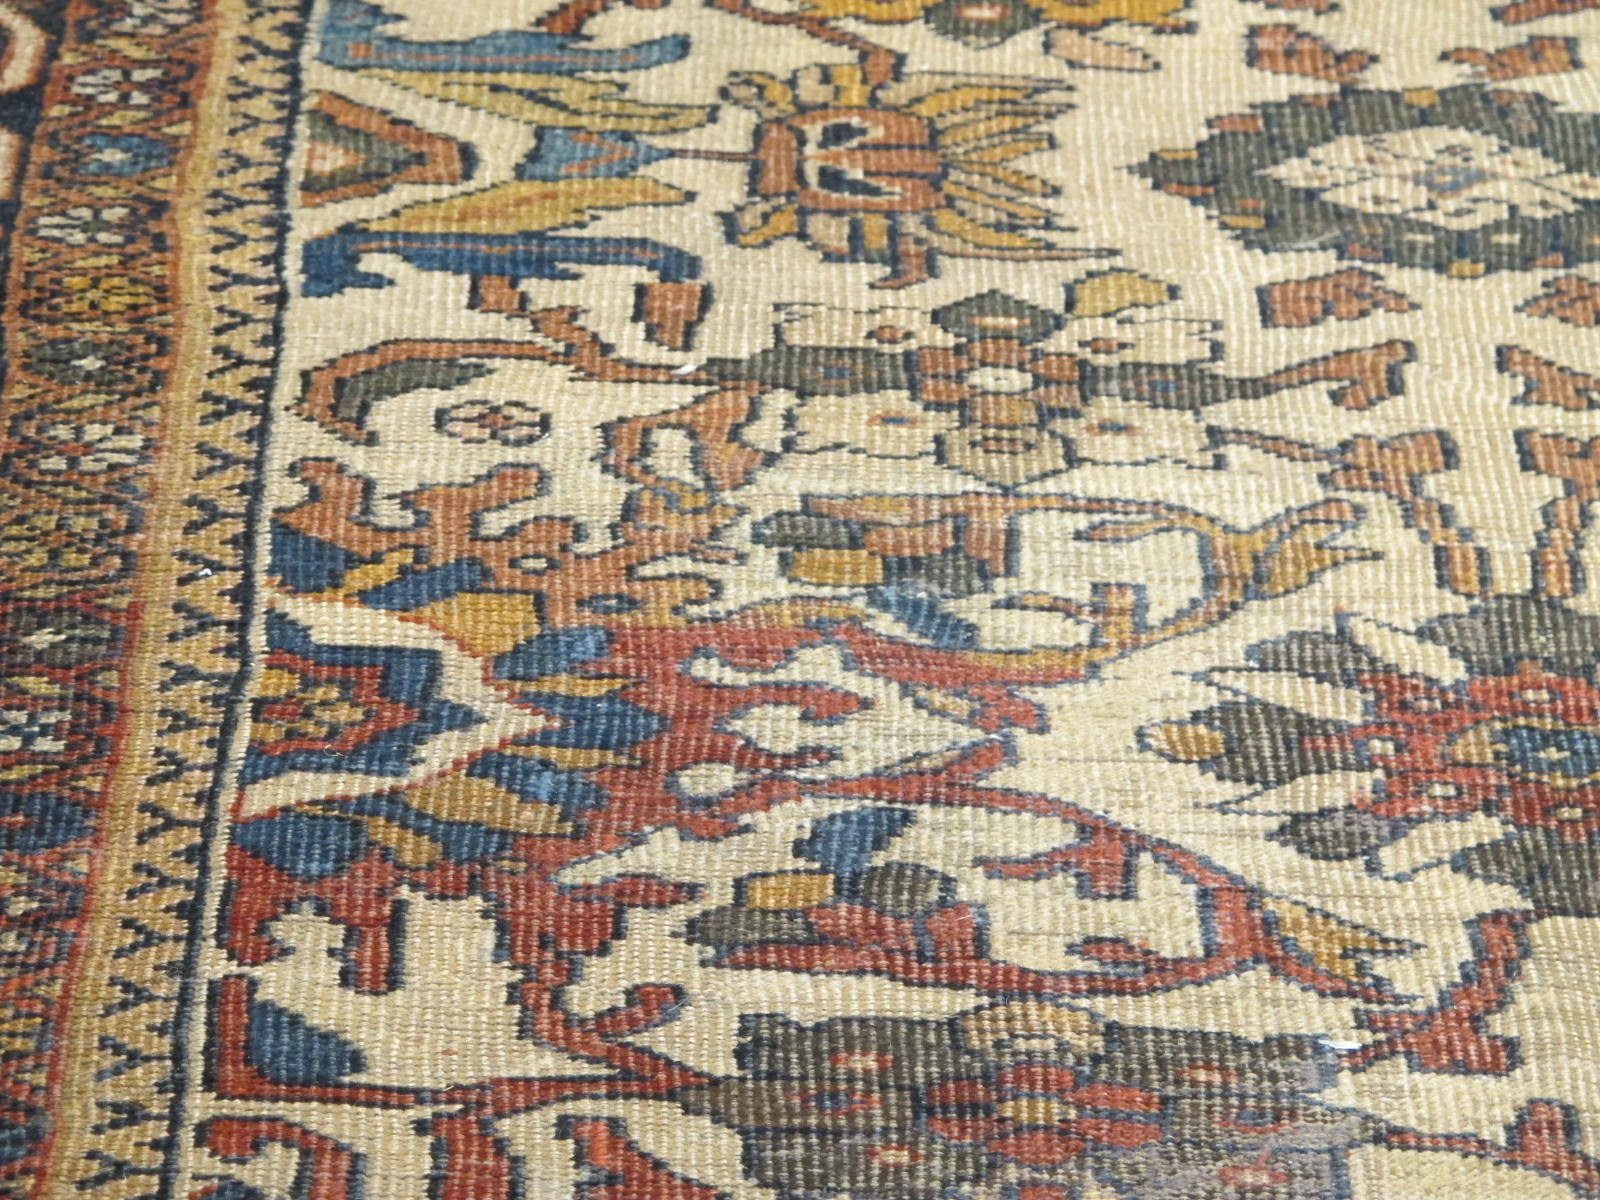 21432 antique persian mahal rug 8,9x12,4 (5)